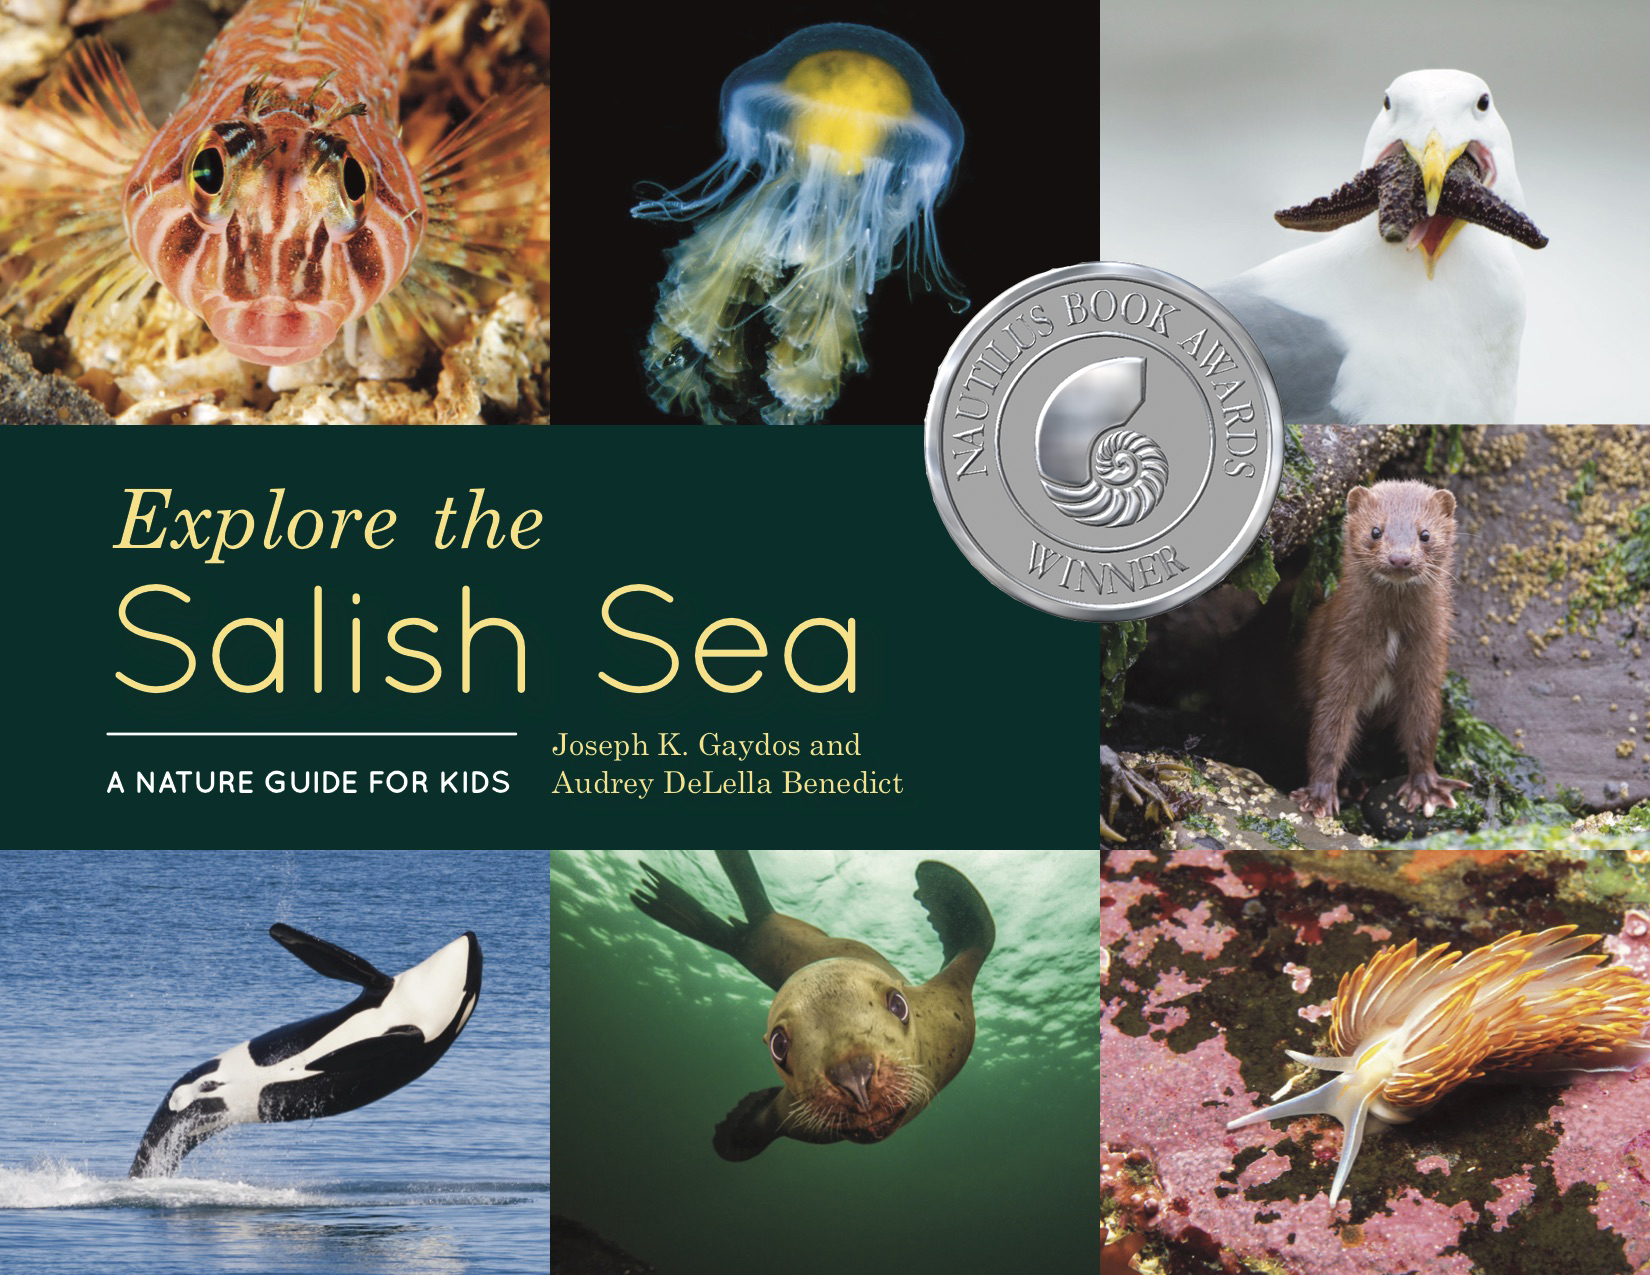 Explore the Salish Sea  is a best-seller and winner of the Nautilus Book Award for Children's Illustrated / Non-Fiction.